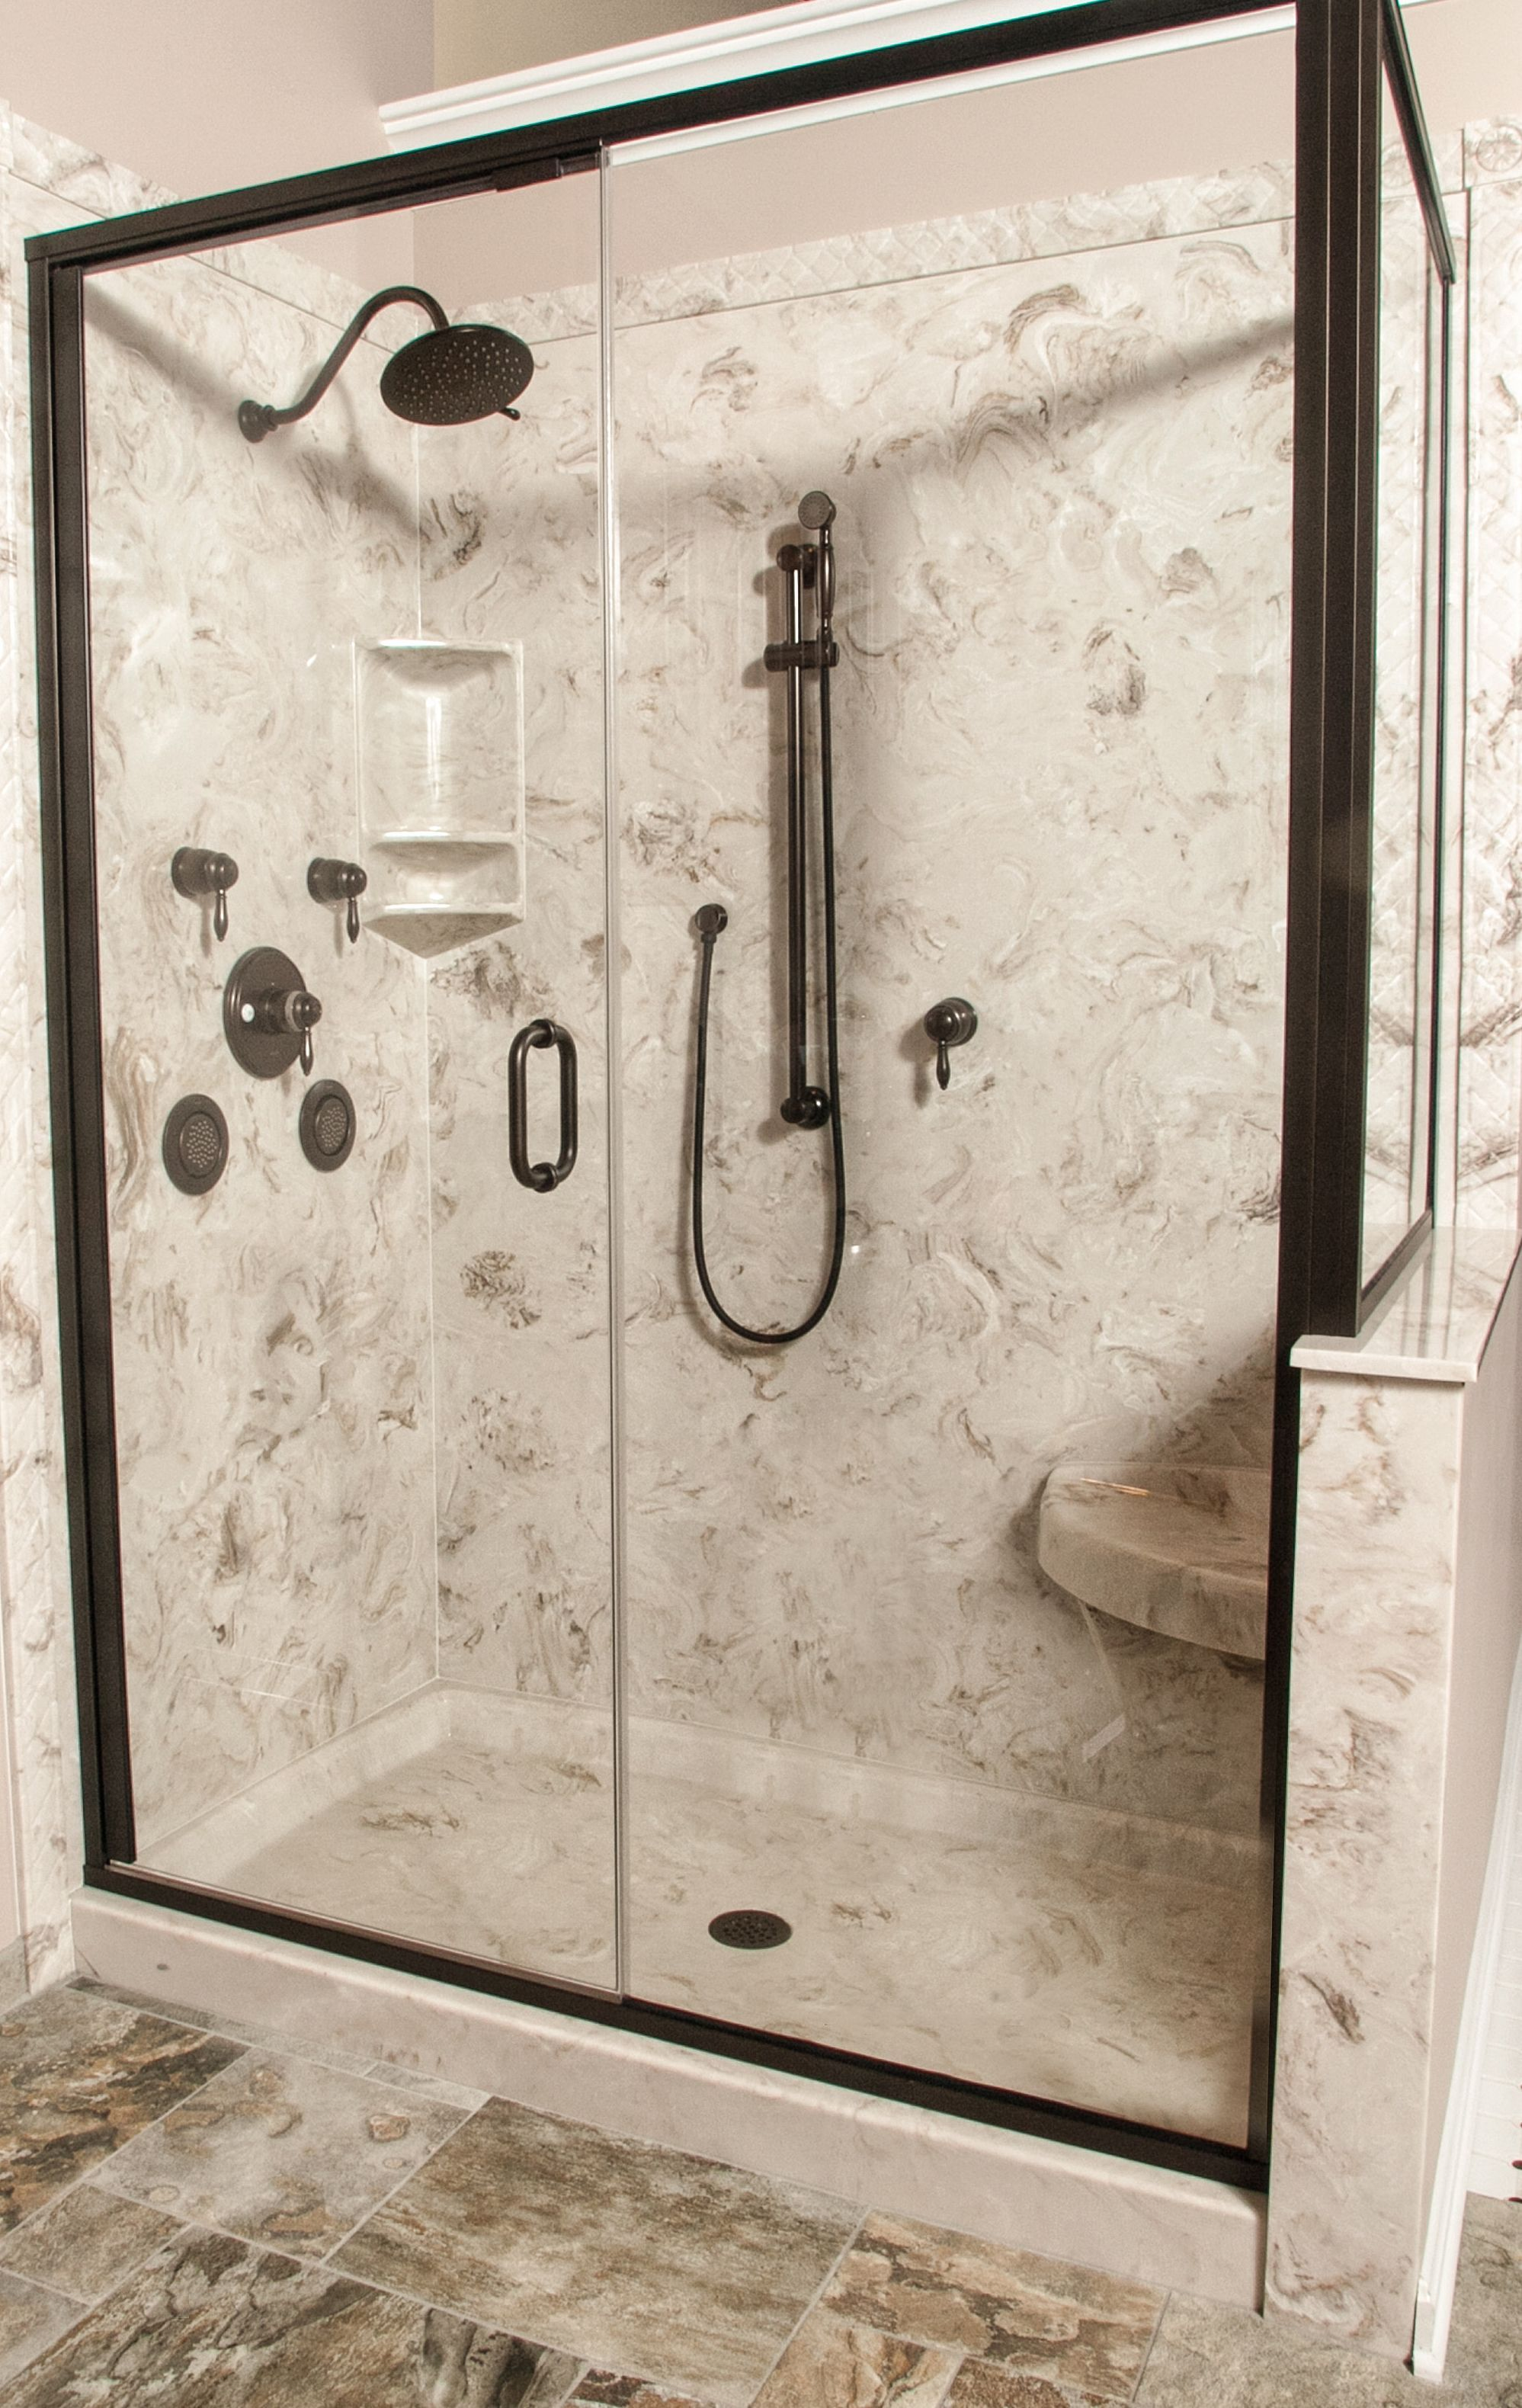 Cultured Marble Shower With Corner Seat Decorative Edge Trim With